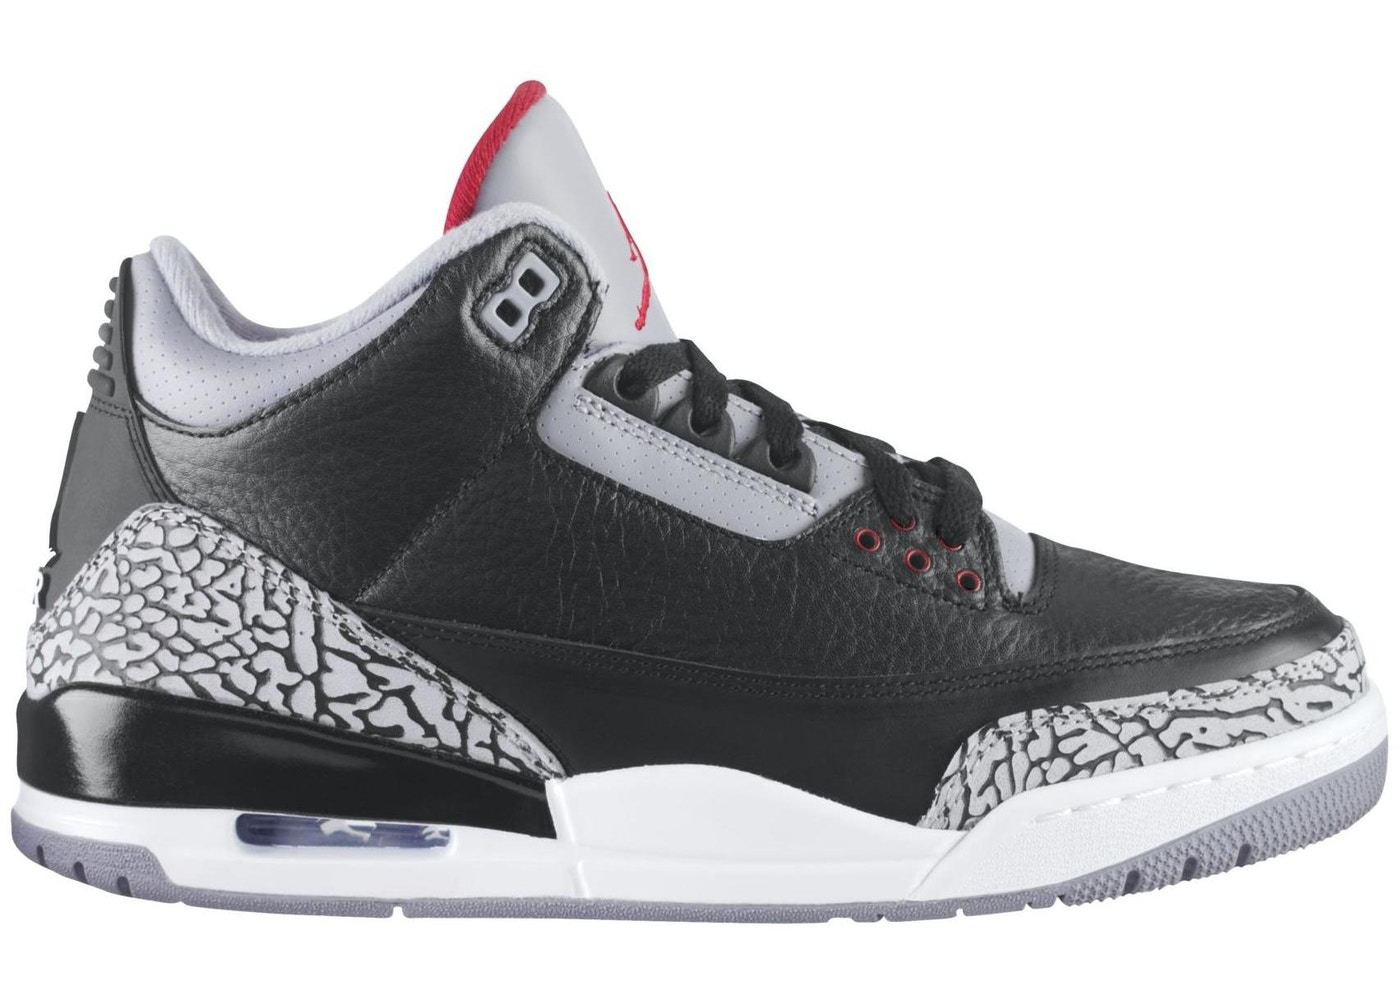 separation shoes a2f7e 2d359 Jordan 3 Retro Black Cement (2011) - 136064-010